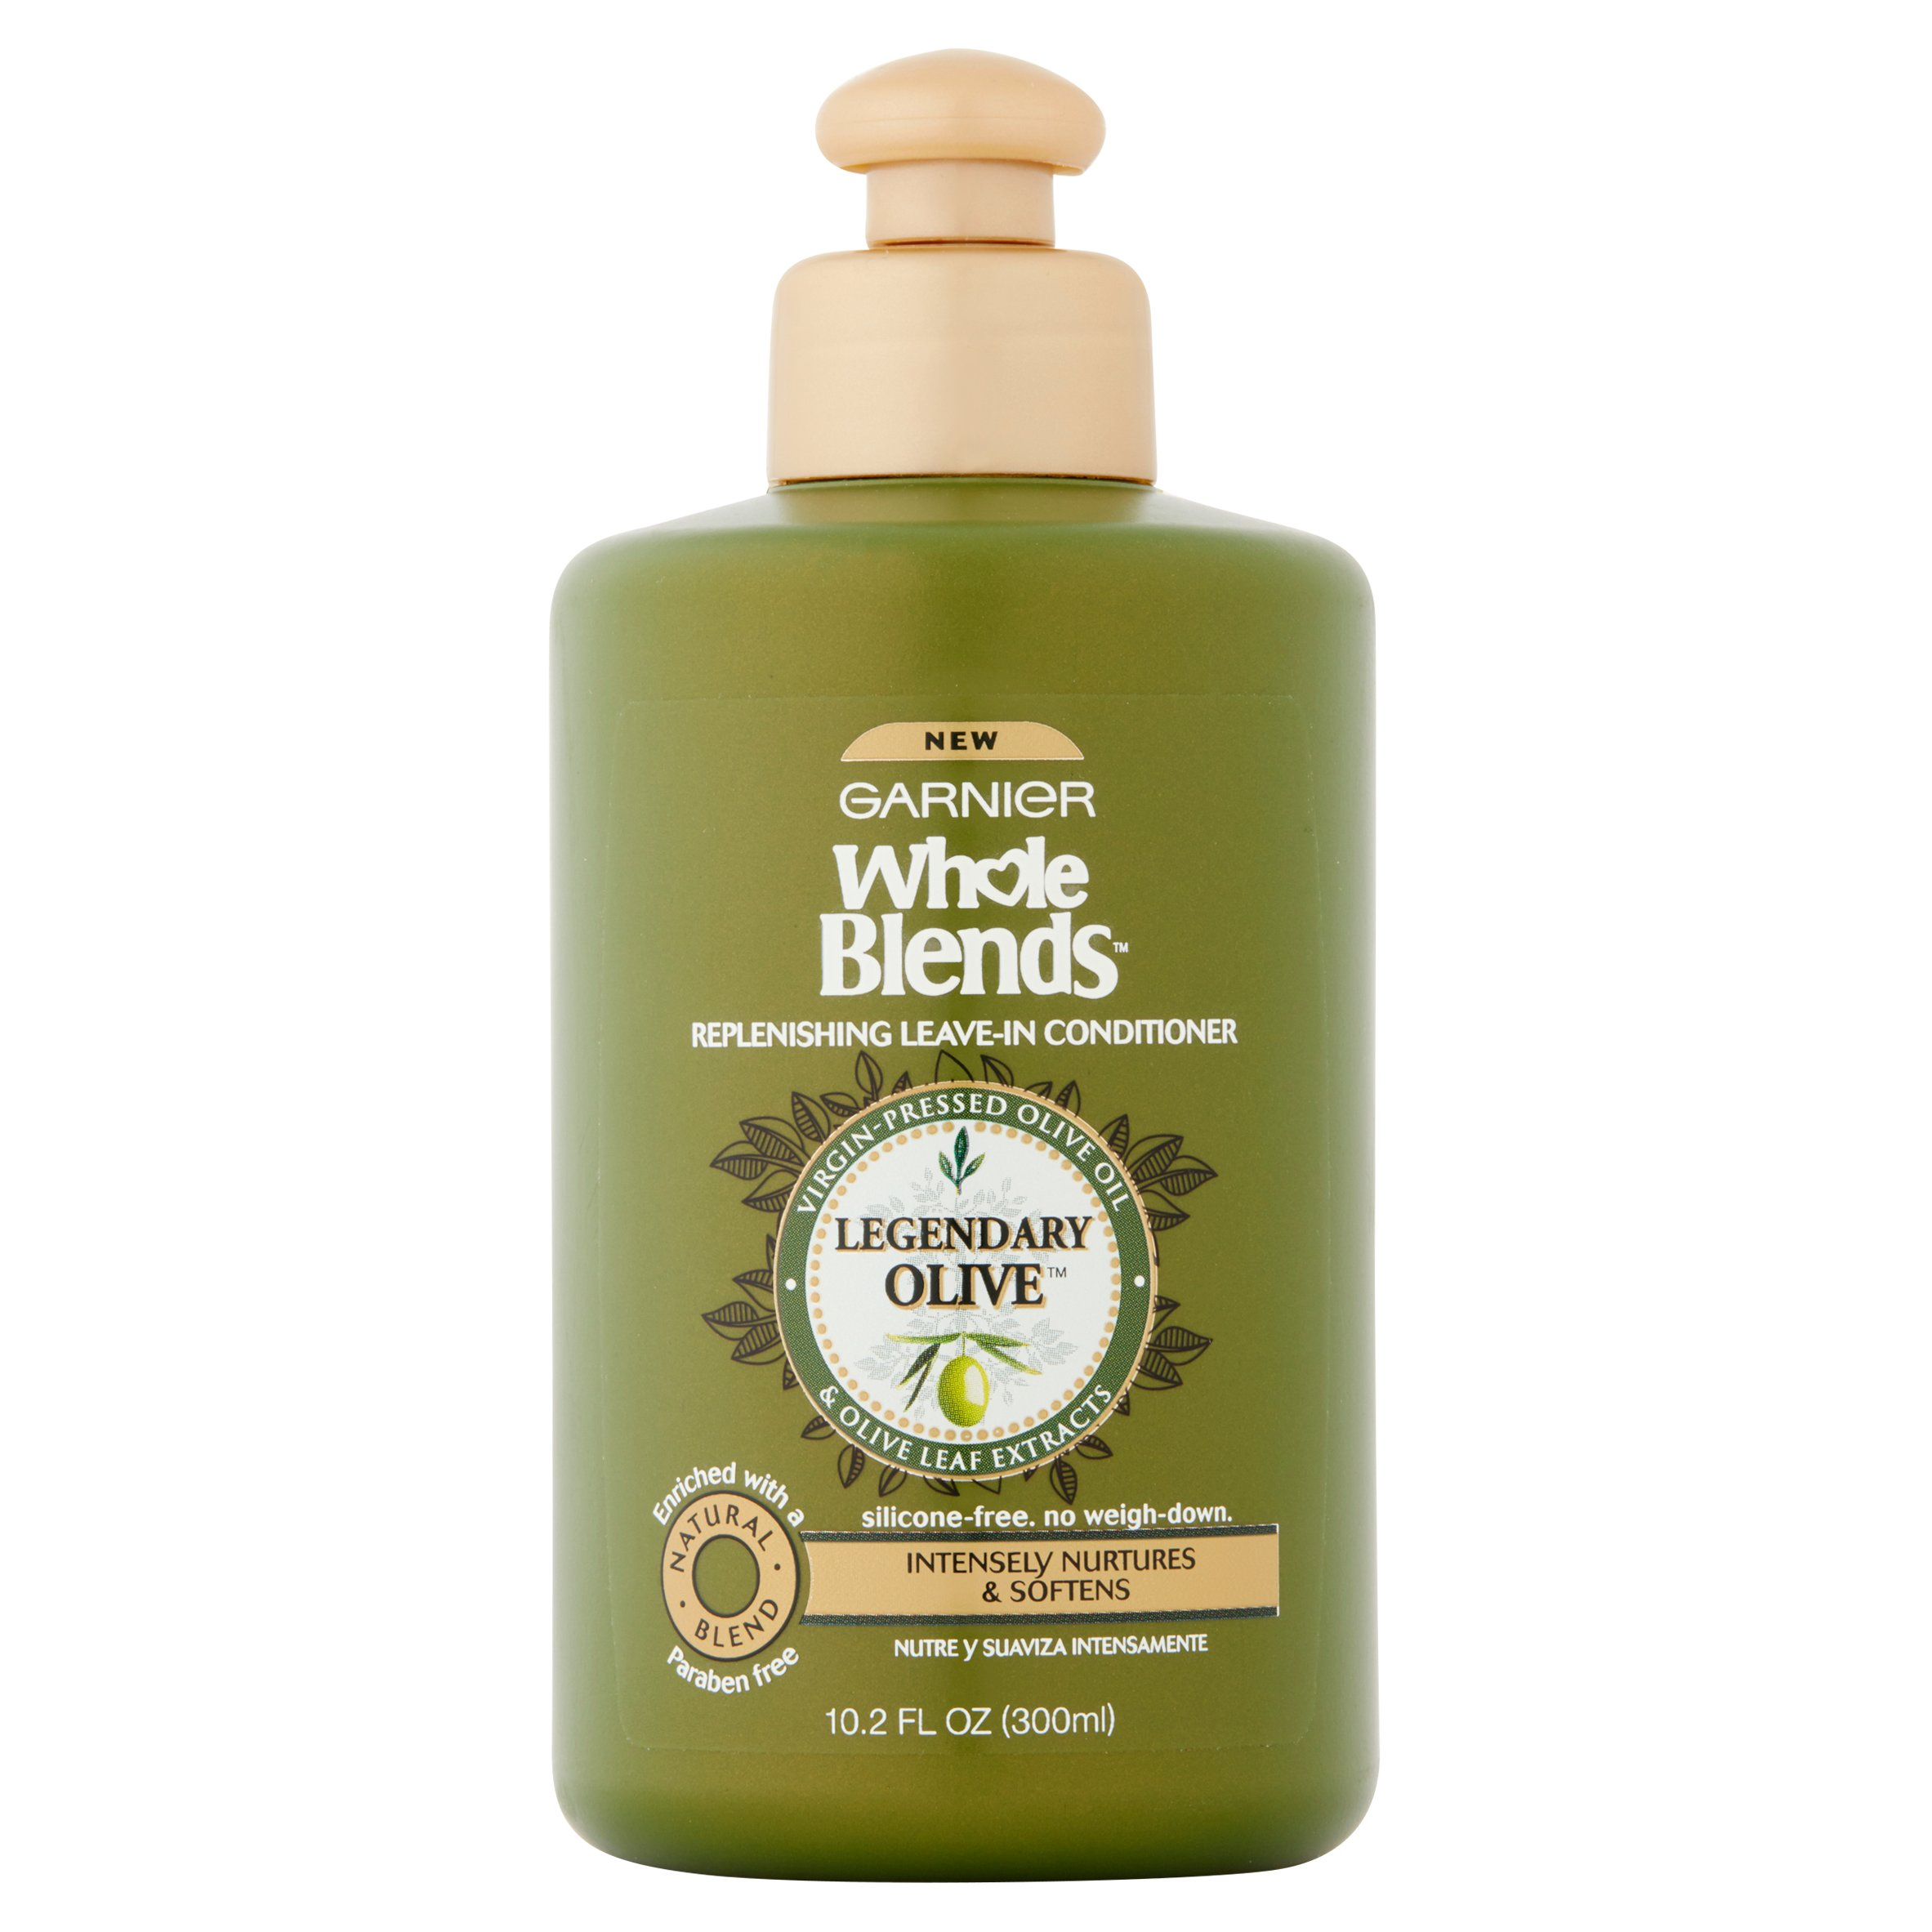 Garnier Whole Blends Replenishing Leave-in Conditioner with Virgin-Pressed Olive Oil & Olive Leaf Extracts 10.2 FL OZ